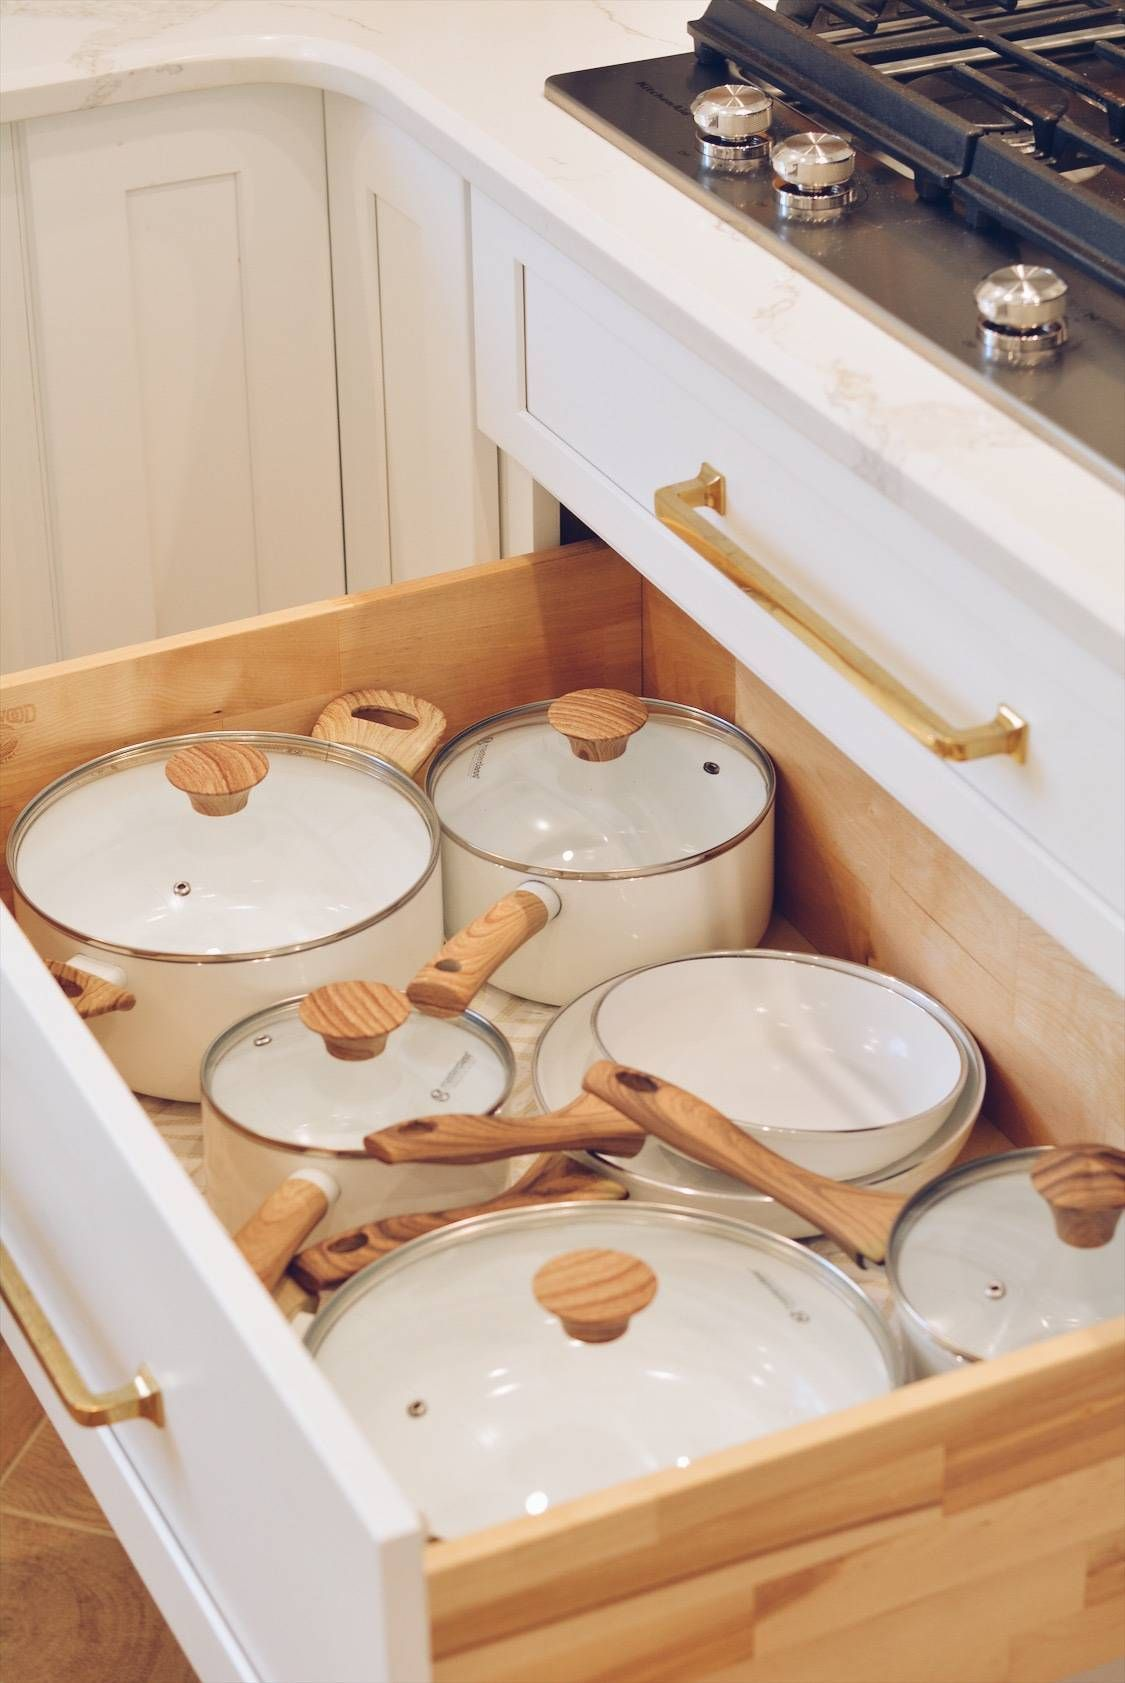 Kitchen Organization: How to Organize Your Kitchen Drawers - The Pink Dream